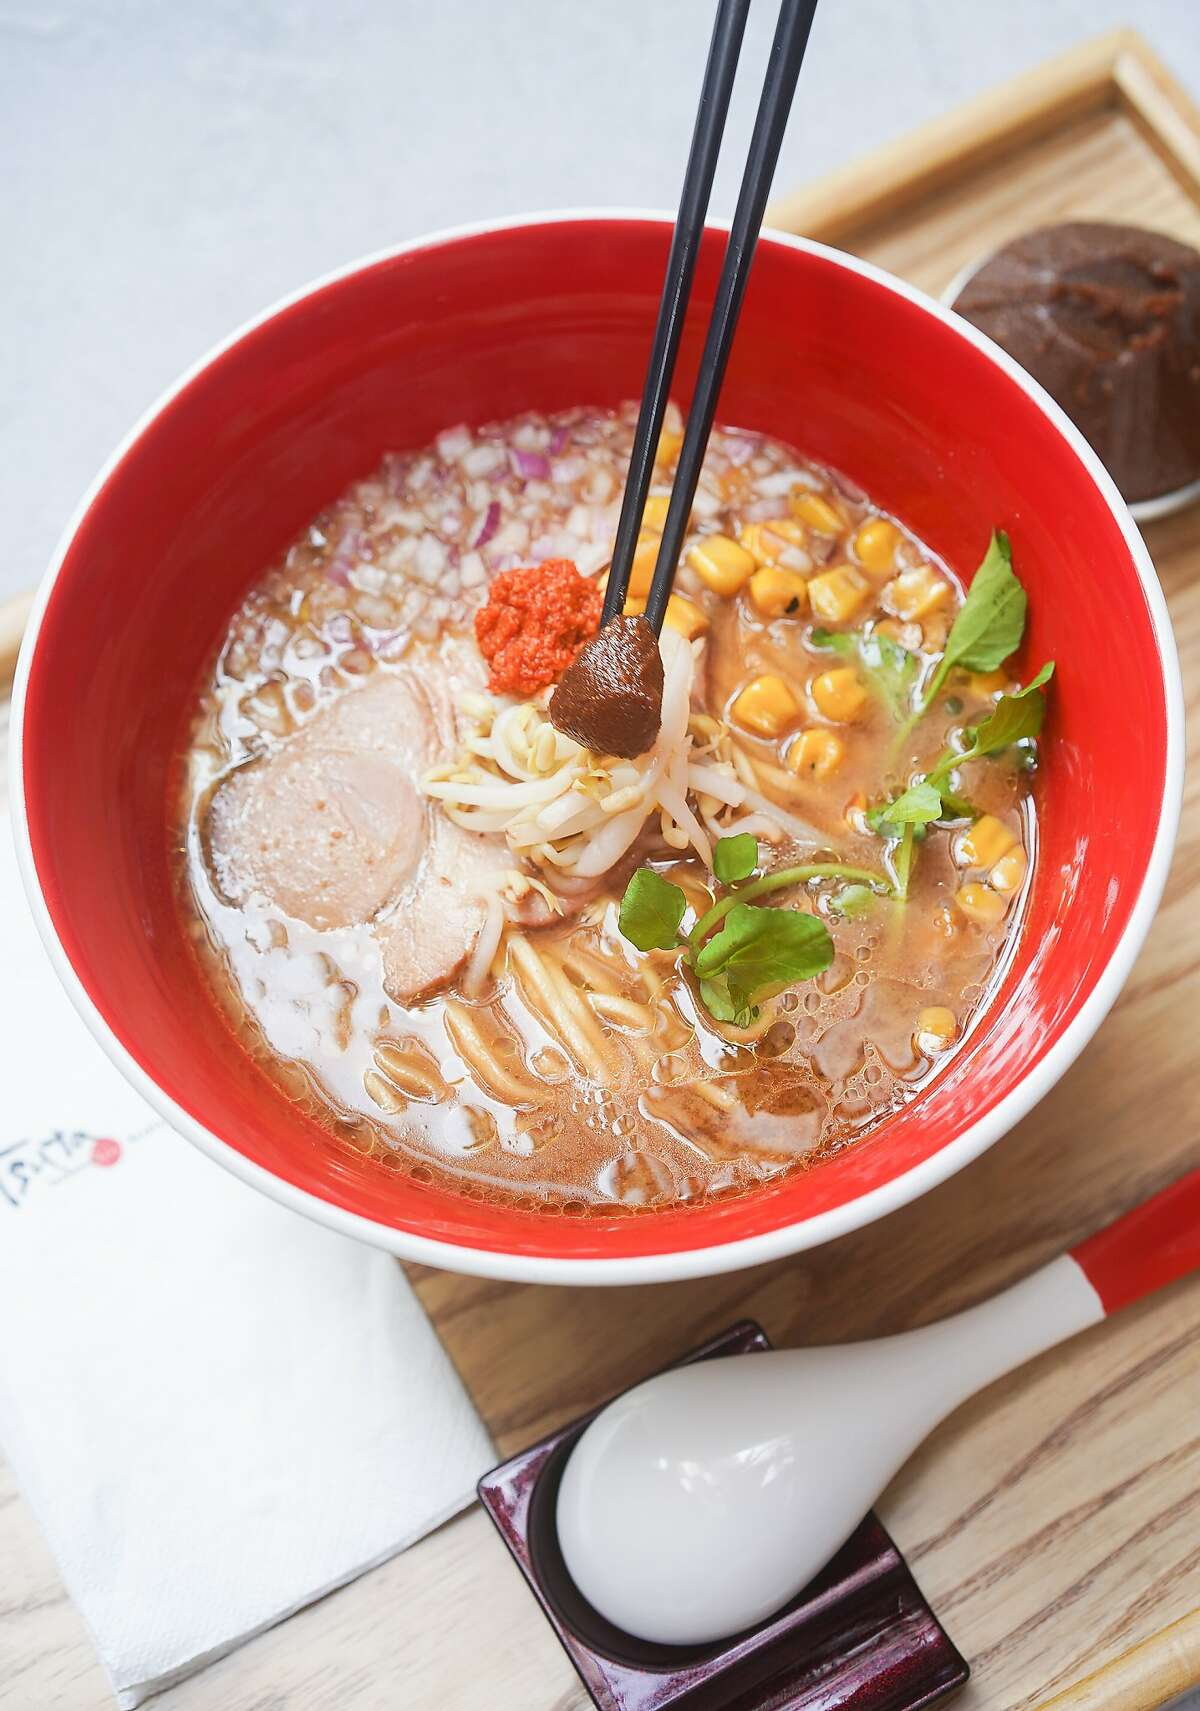 The miso ramen at Tsuta comes with char siu, bamboo shoots, corn, red onion and hot sauce.